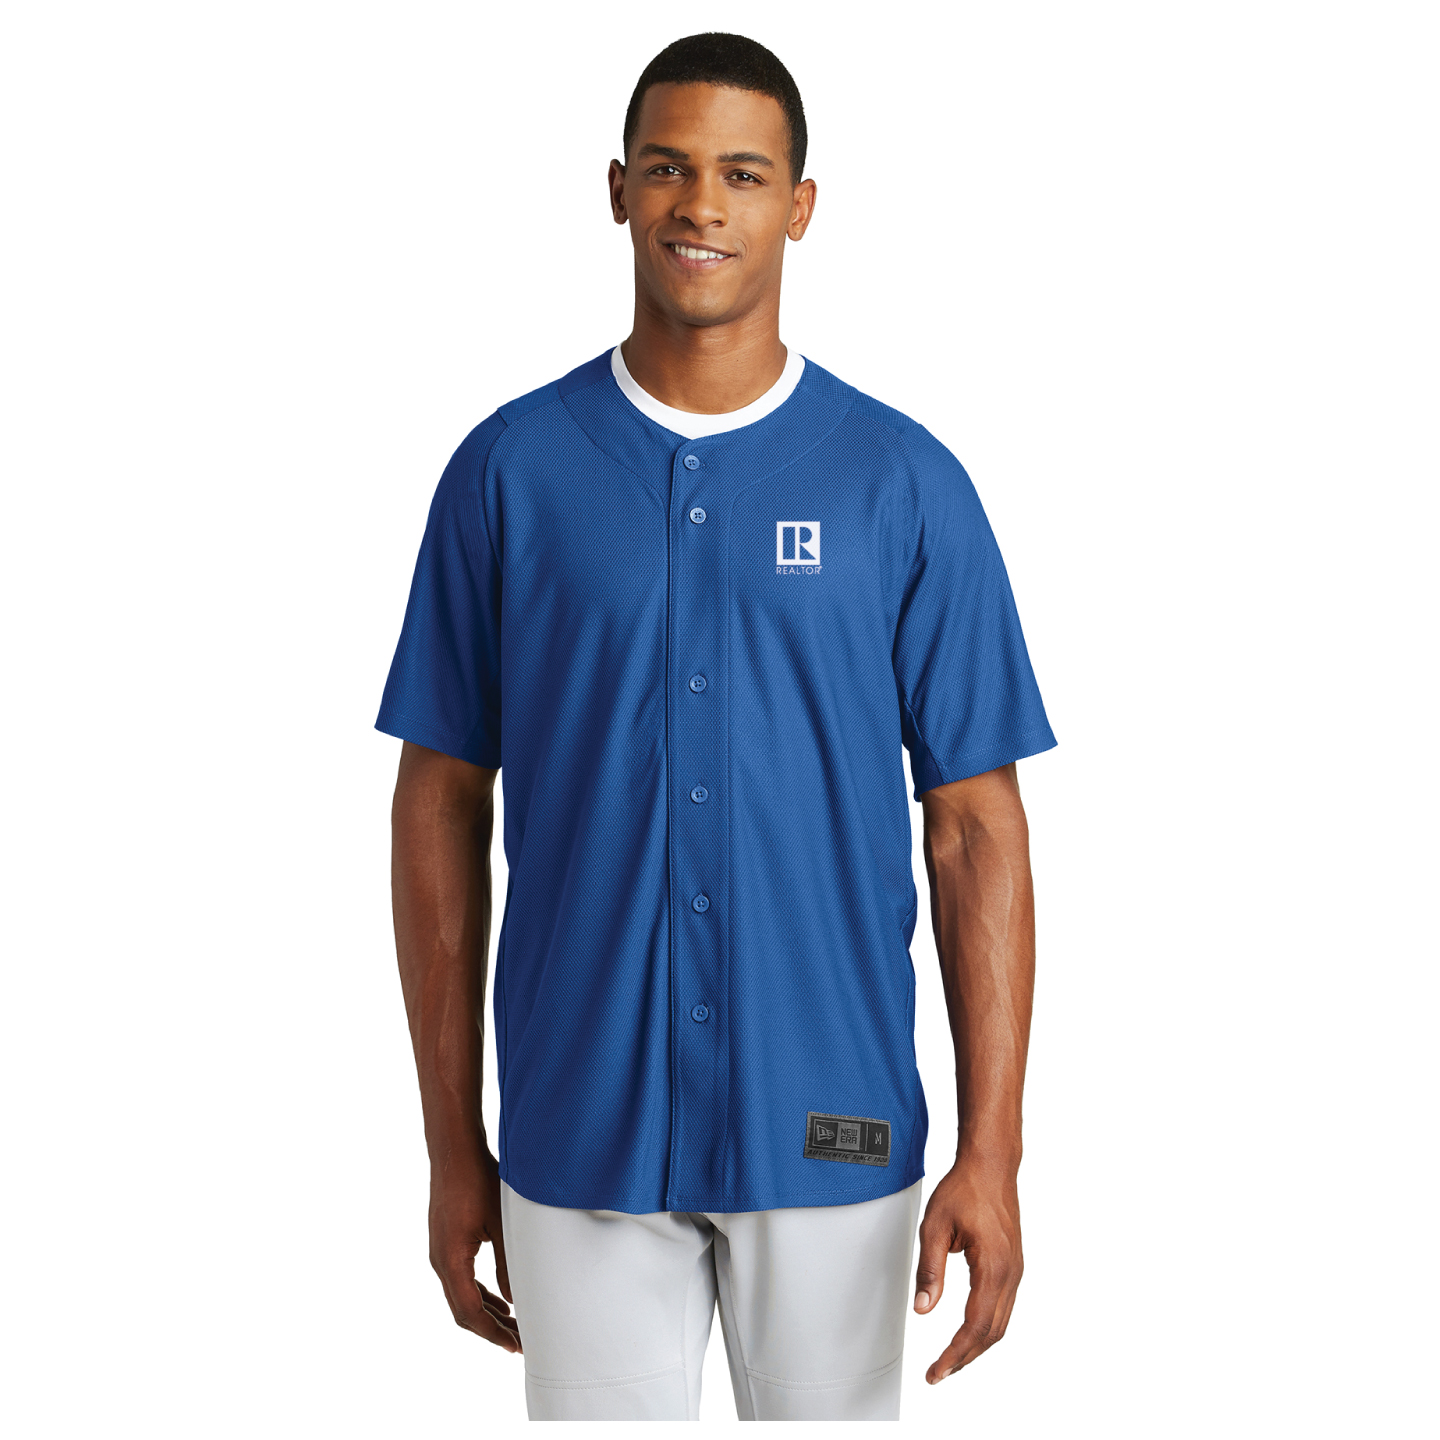 New Era Diamond Era Full-Button Jersey Button Downs,Dress,Shirts,Collars, buttons, jerseys,baseballs,button ups, Football